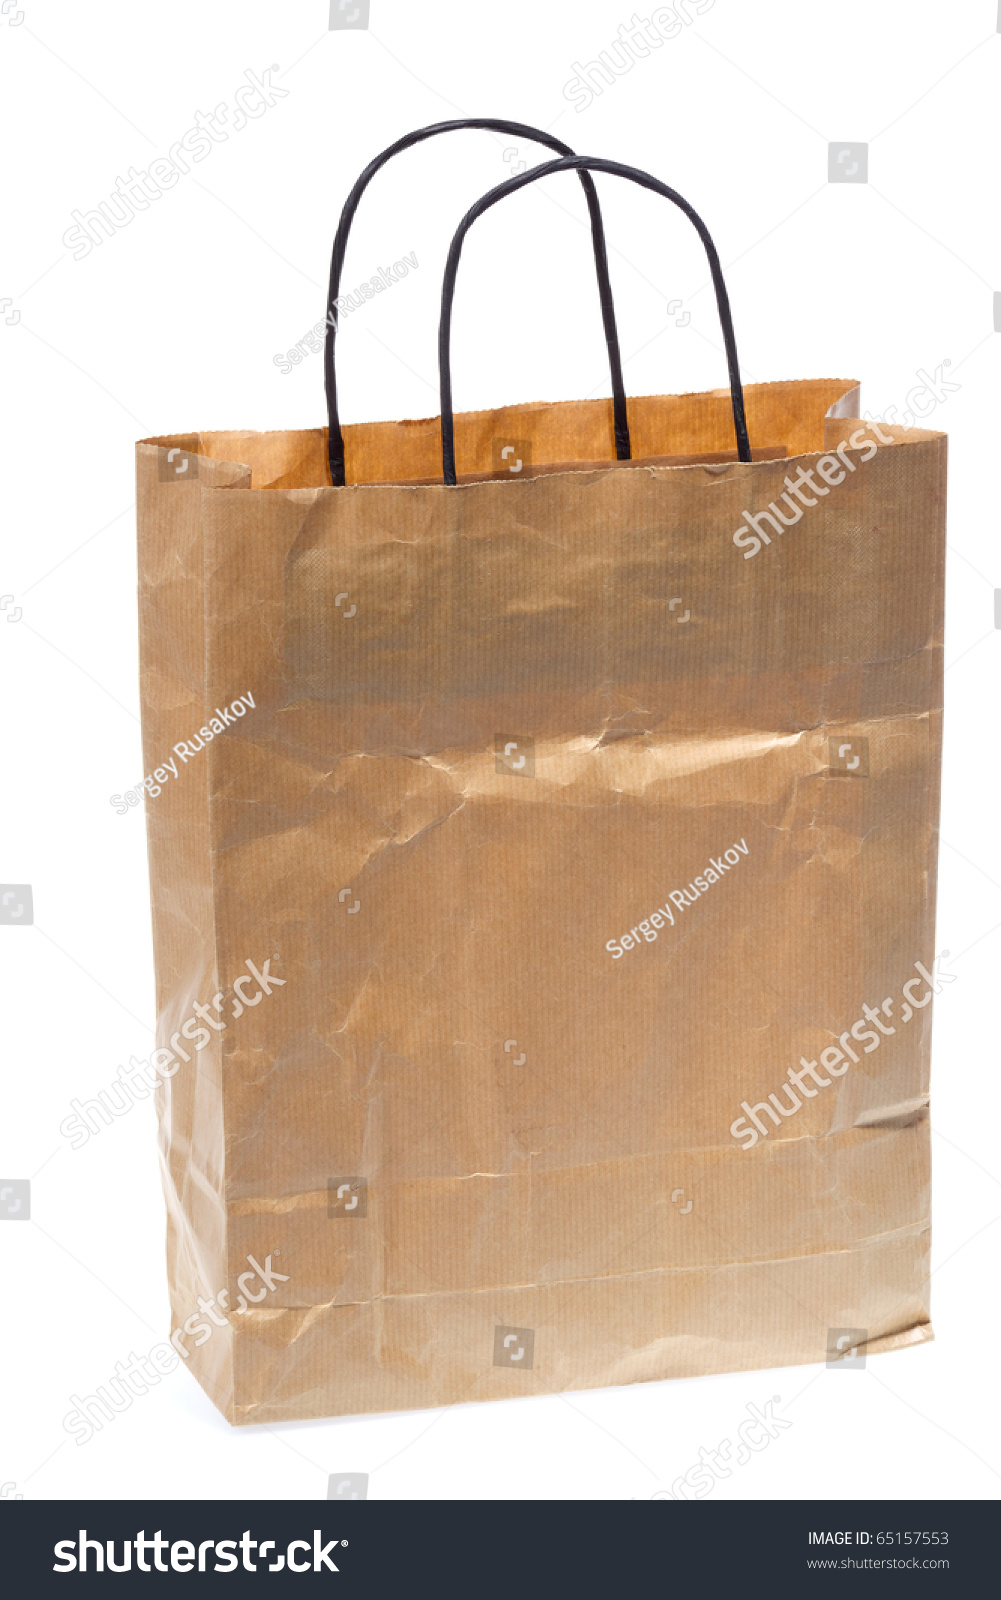 Paper Shopping Bag Black Handle Isolated Stock Photo ...